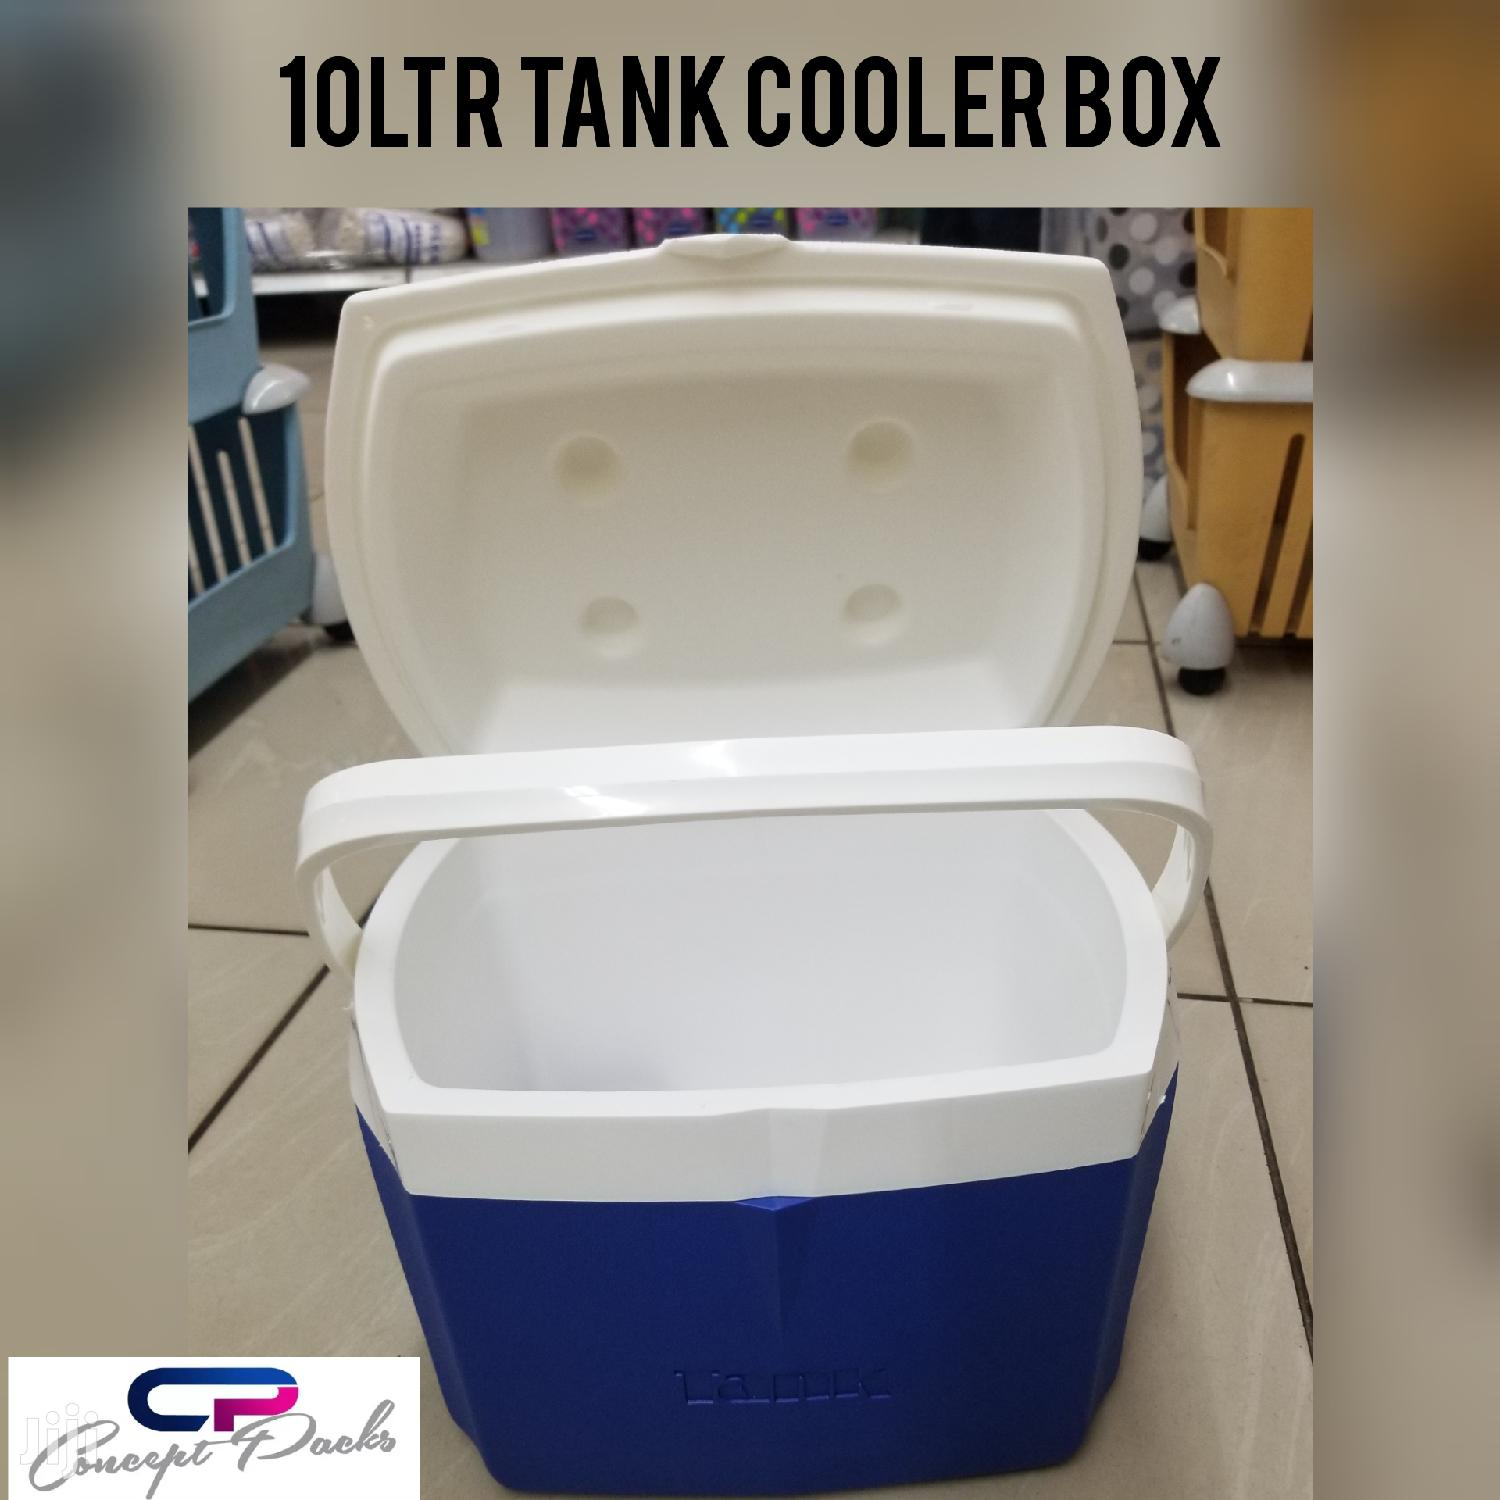 10 Ltrs Cooler Box Tank Brand. Quality Product.